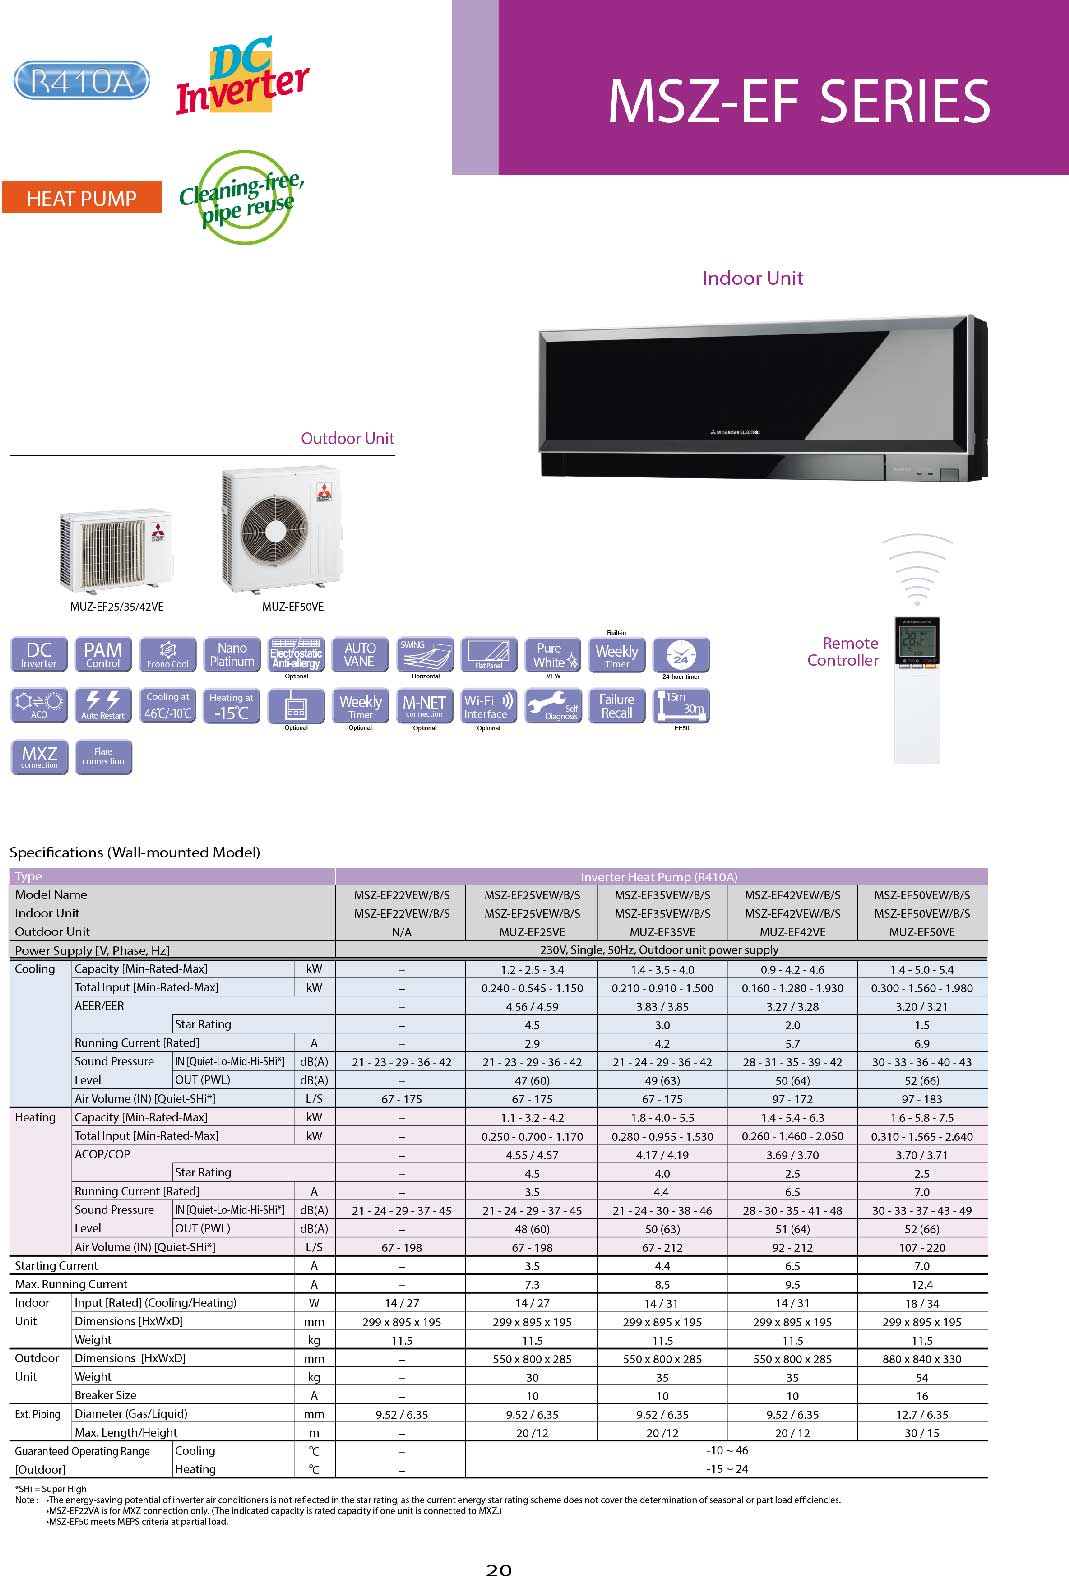 Mitsubishi-Air-Conditioning-Systems-21